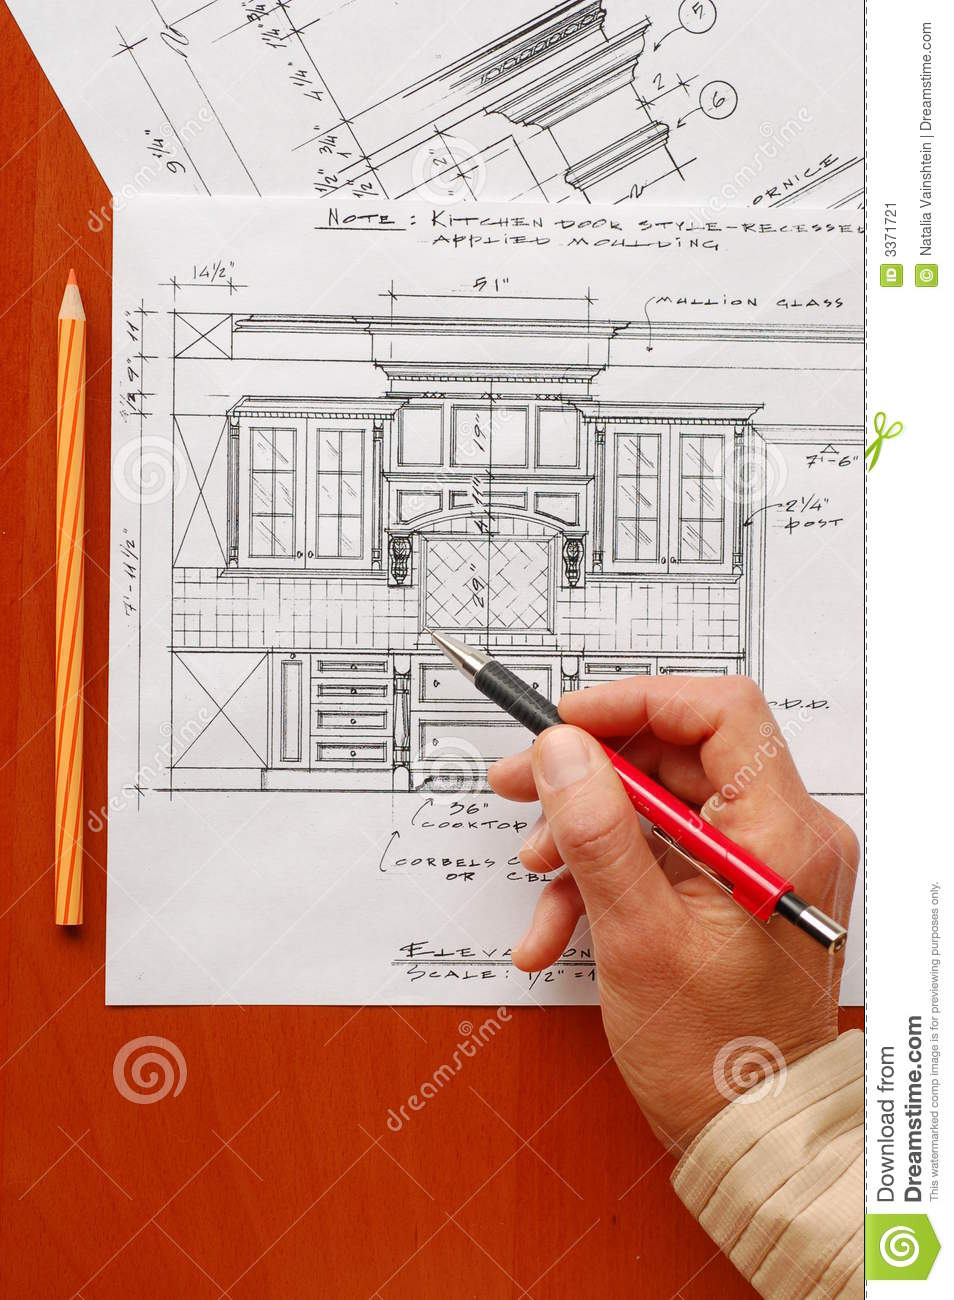 Interior design drawings stock image image 3371721 for Interior design drawing